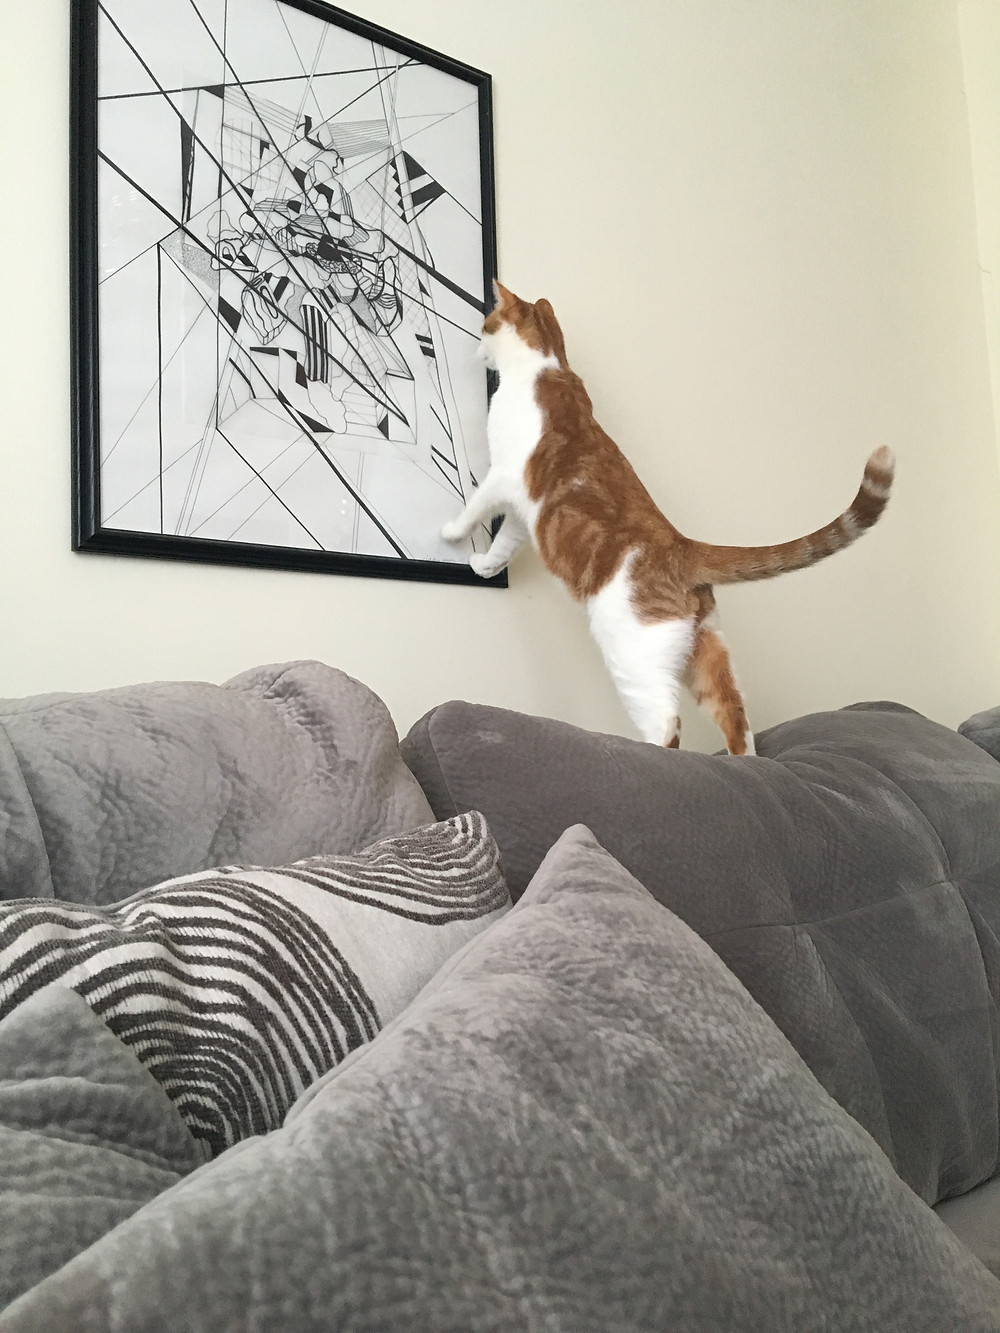 cat standing on the couch looking at artwork on the wall